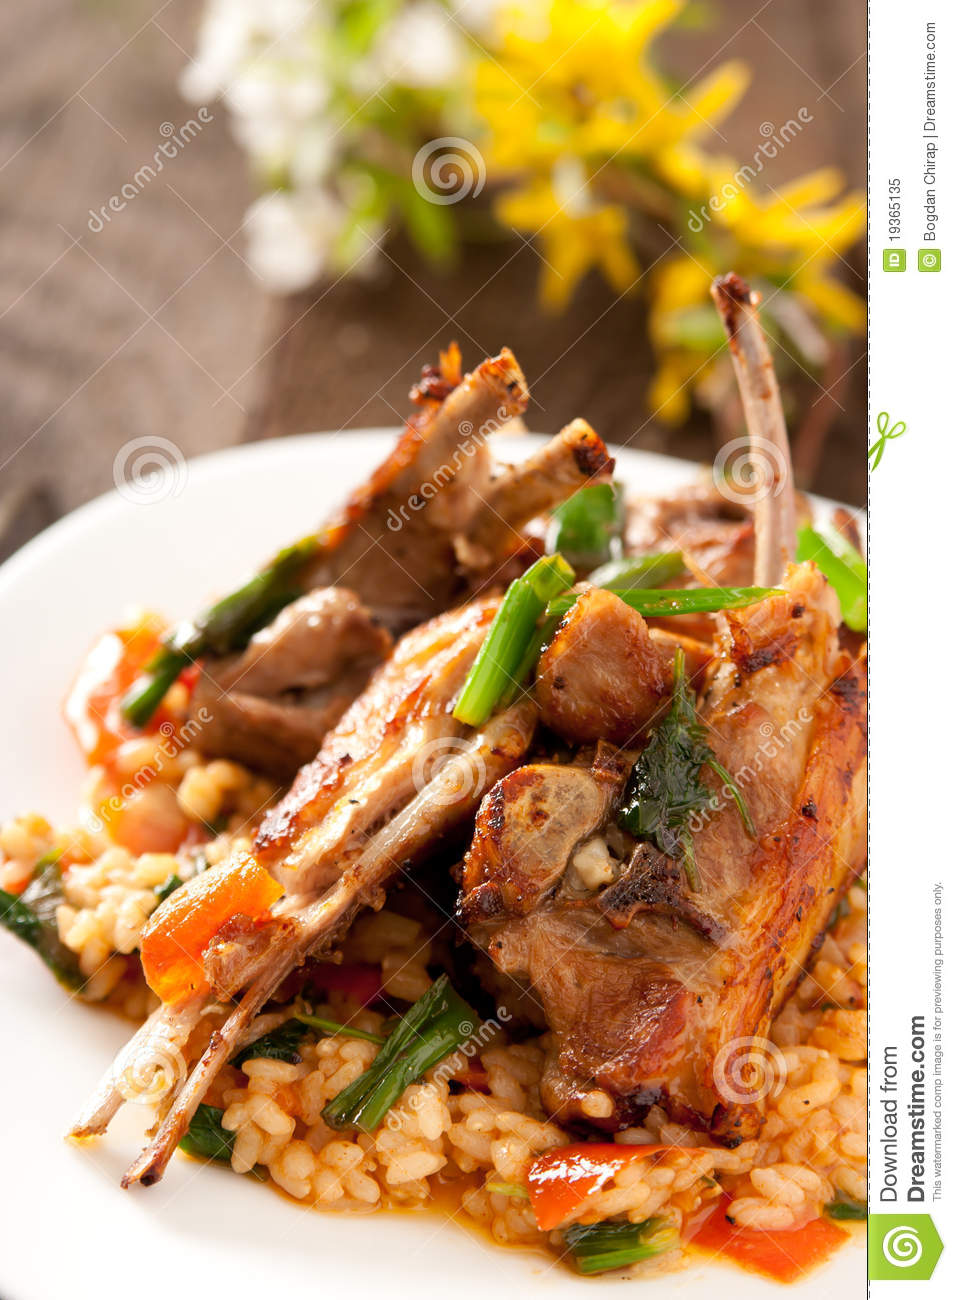 Lamb Chops With Spicy Rice Royalty Free Stock Photo - Image: 19365135